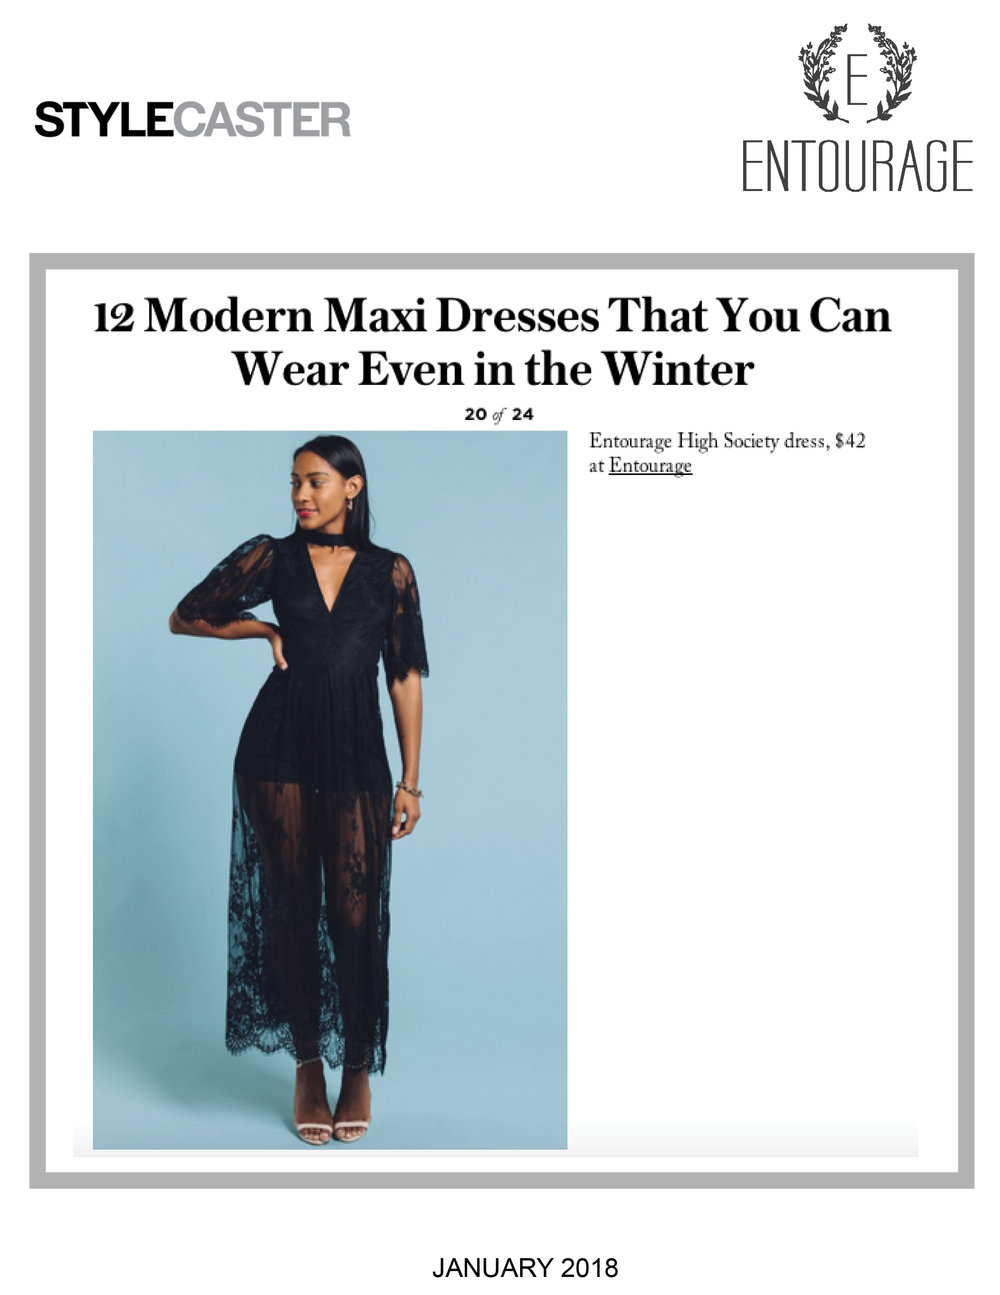 Entourage_StyleCaster_January2018.jpg